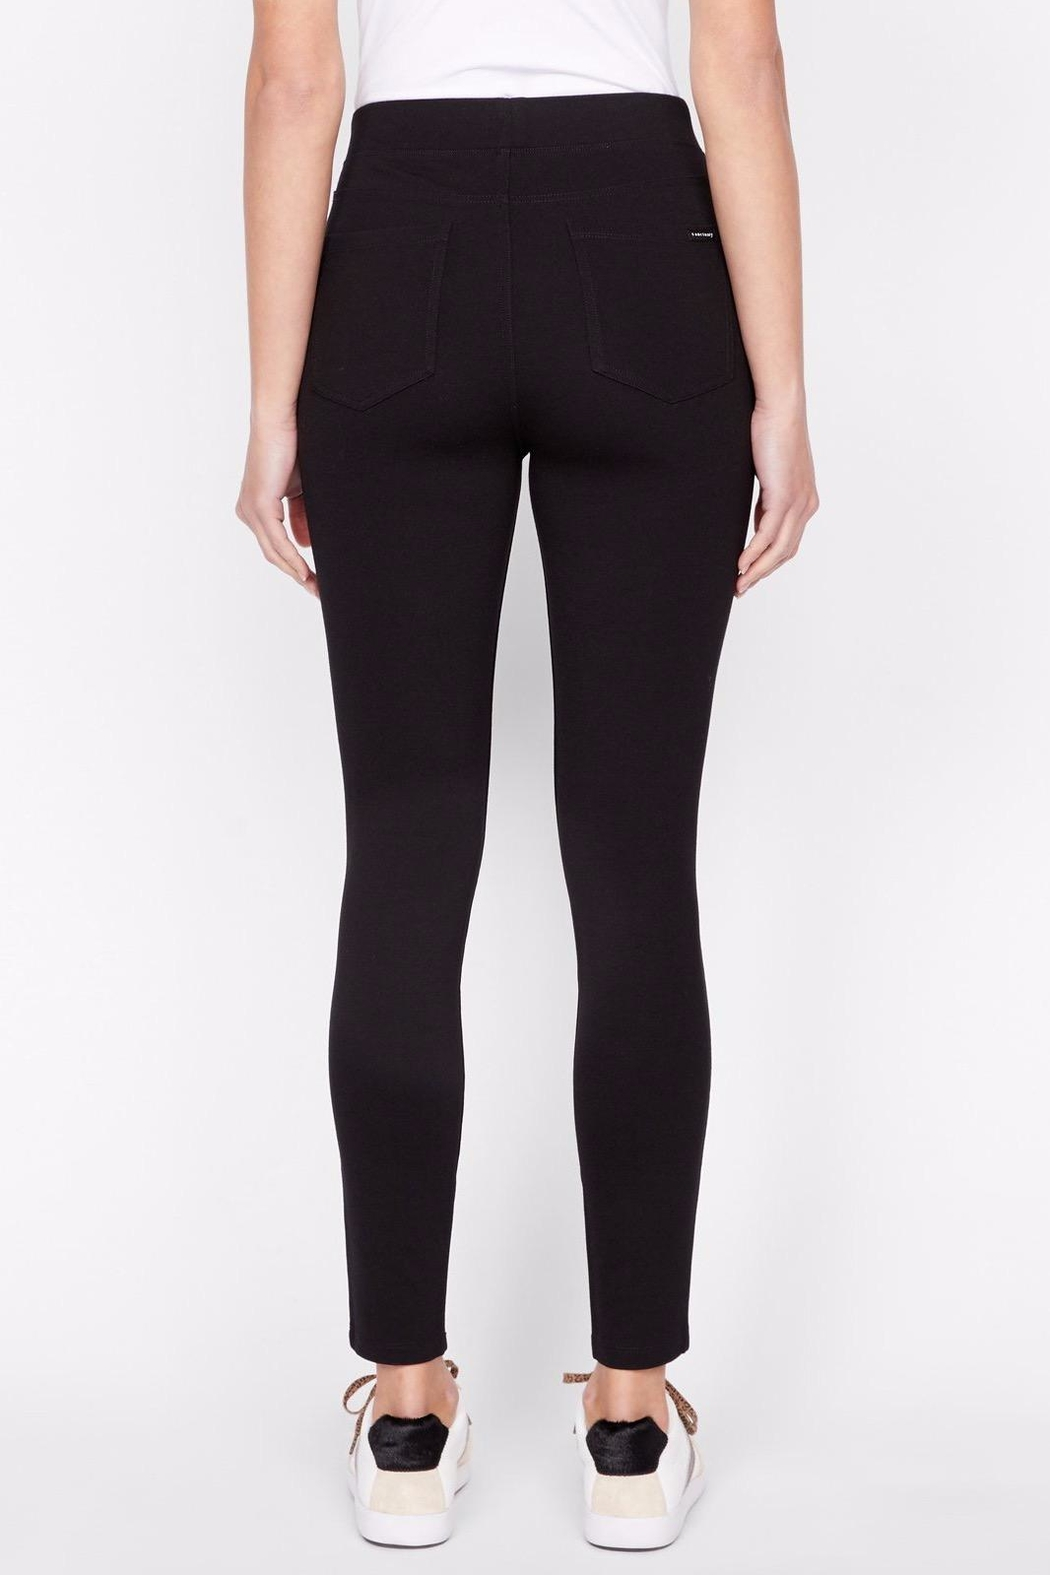 Sanctuary Ponte Runway Pant - Side Cropped Image